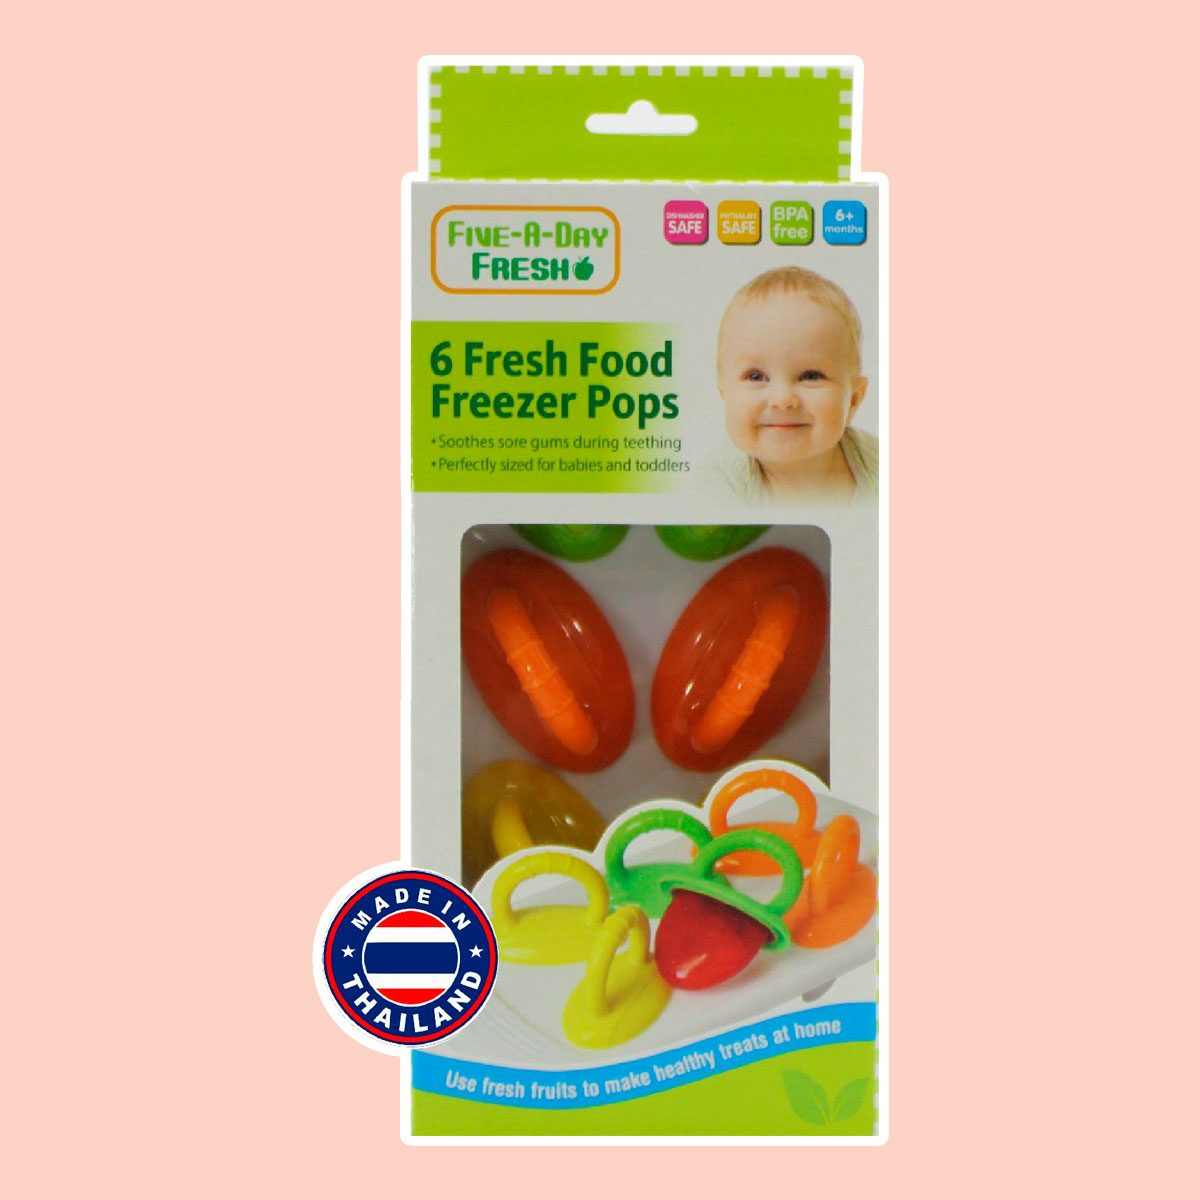 Five-A-Day 6 Fresh Food Freezer Pops with Easy Grip Handles